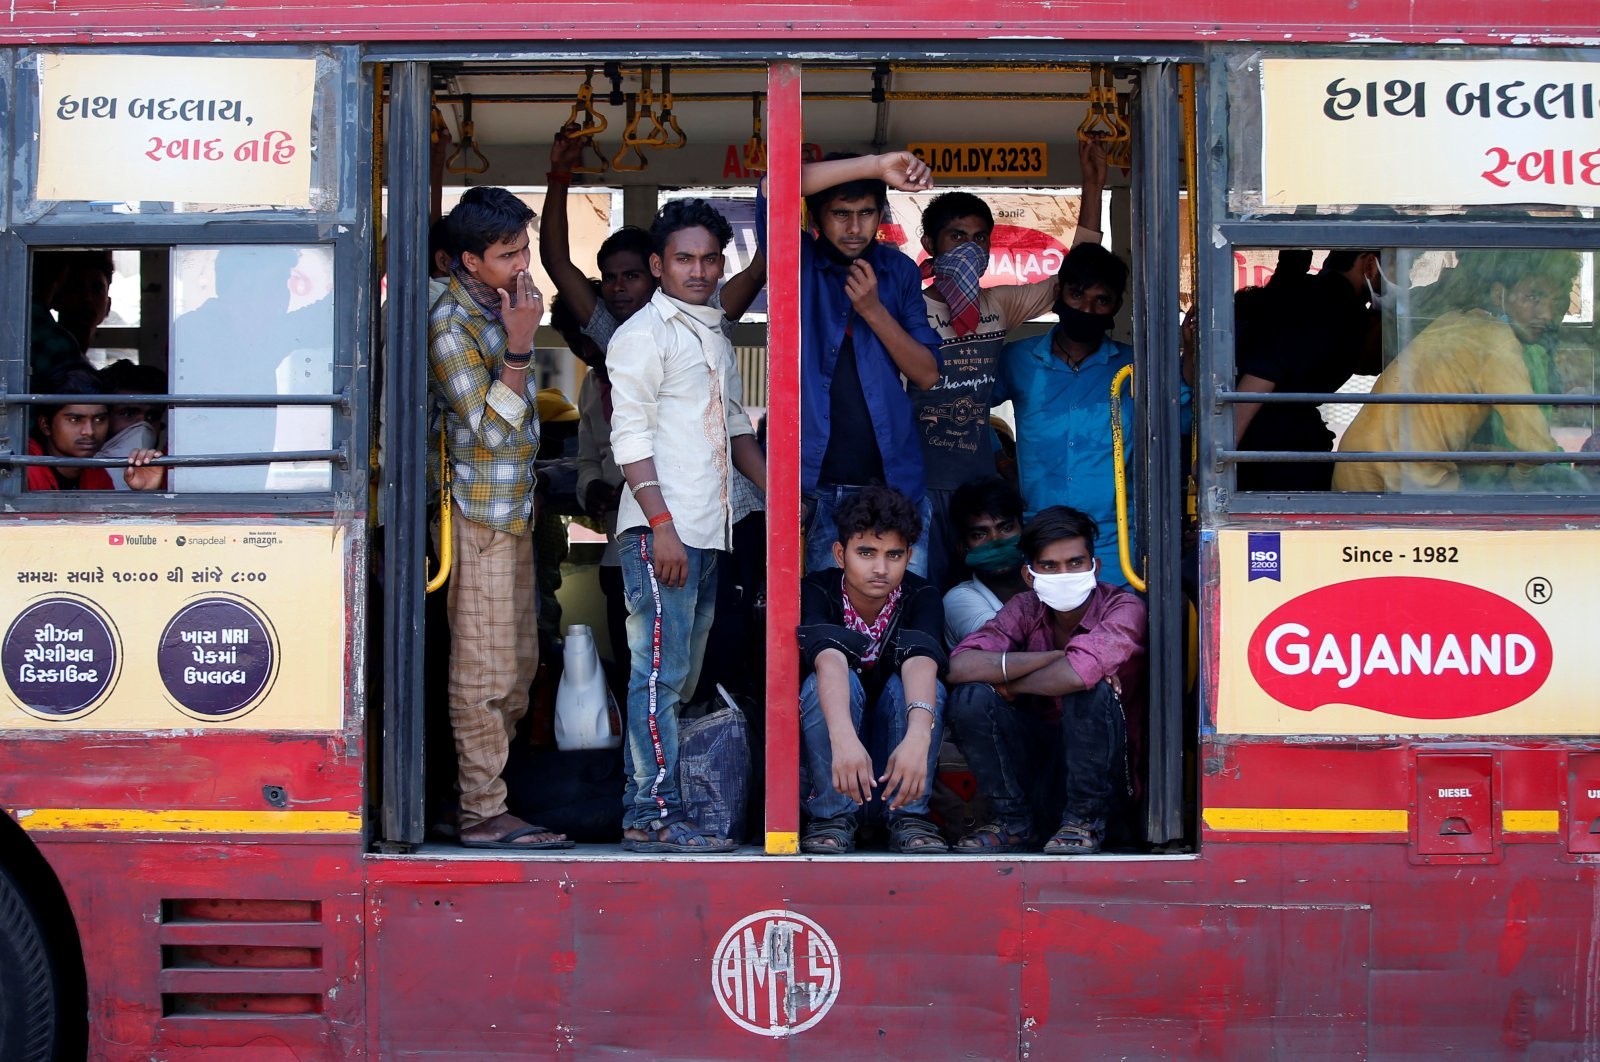 Migrant workers, who were stranded in the western state of Gujarat due to a lockdown imposed by the government to prevent the spread of the coronavirus, are seen inside a parked bus as they wait to board a train that will take them to their home state of eastern Bihar, in Ahmedabad, India, May 8, 2020. (Reuters Photo)